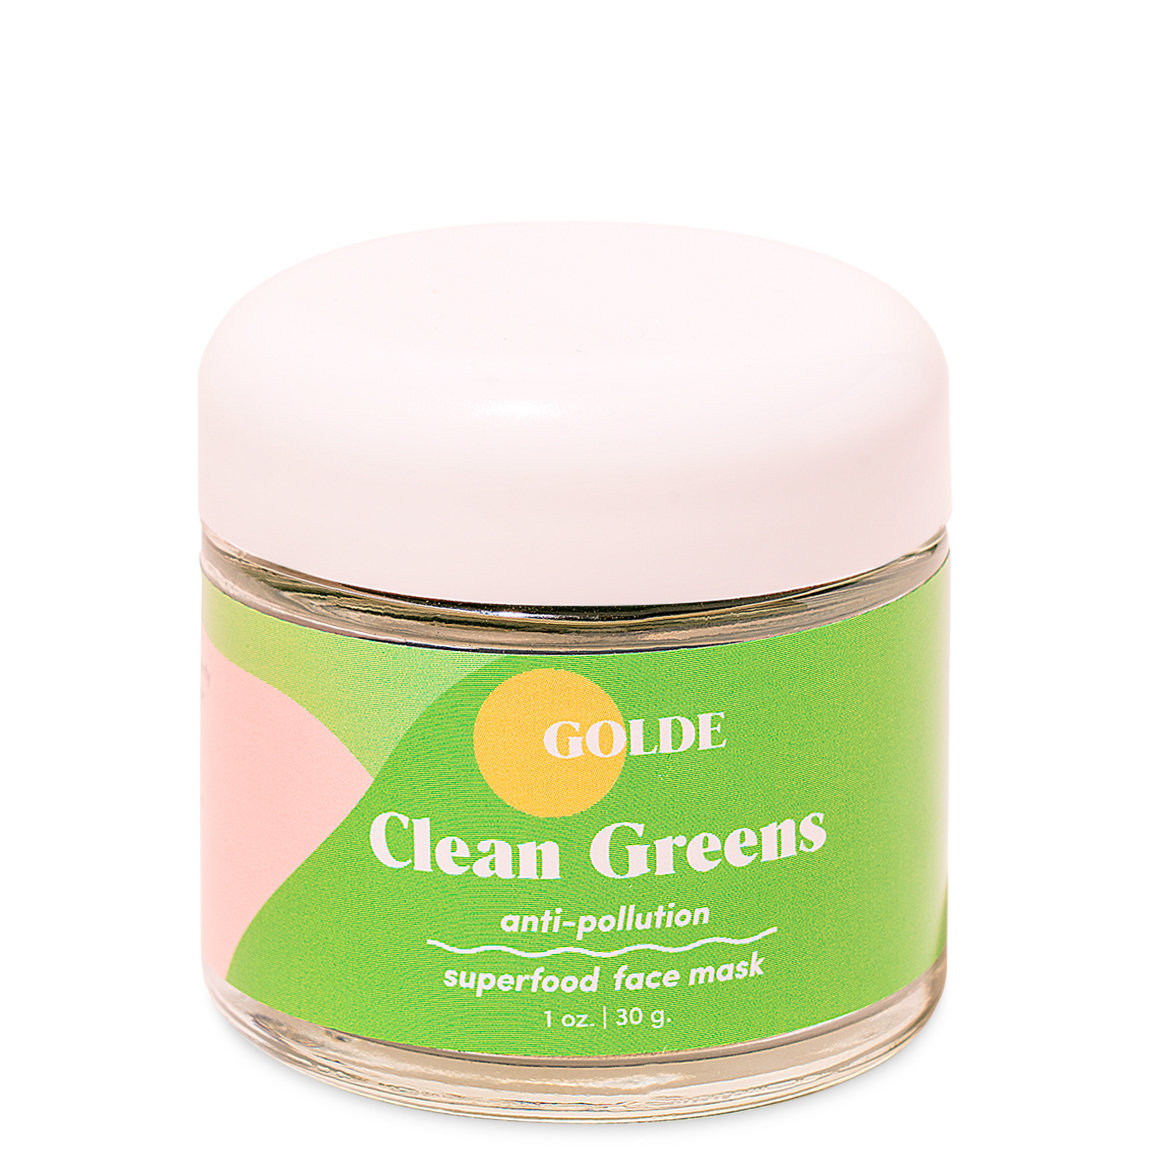 Golde Clean Greens Face Mask alternative view 1 - product swatch.